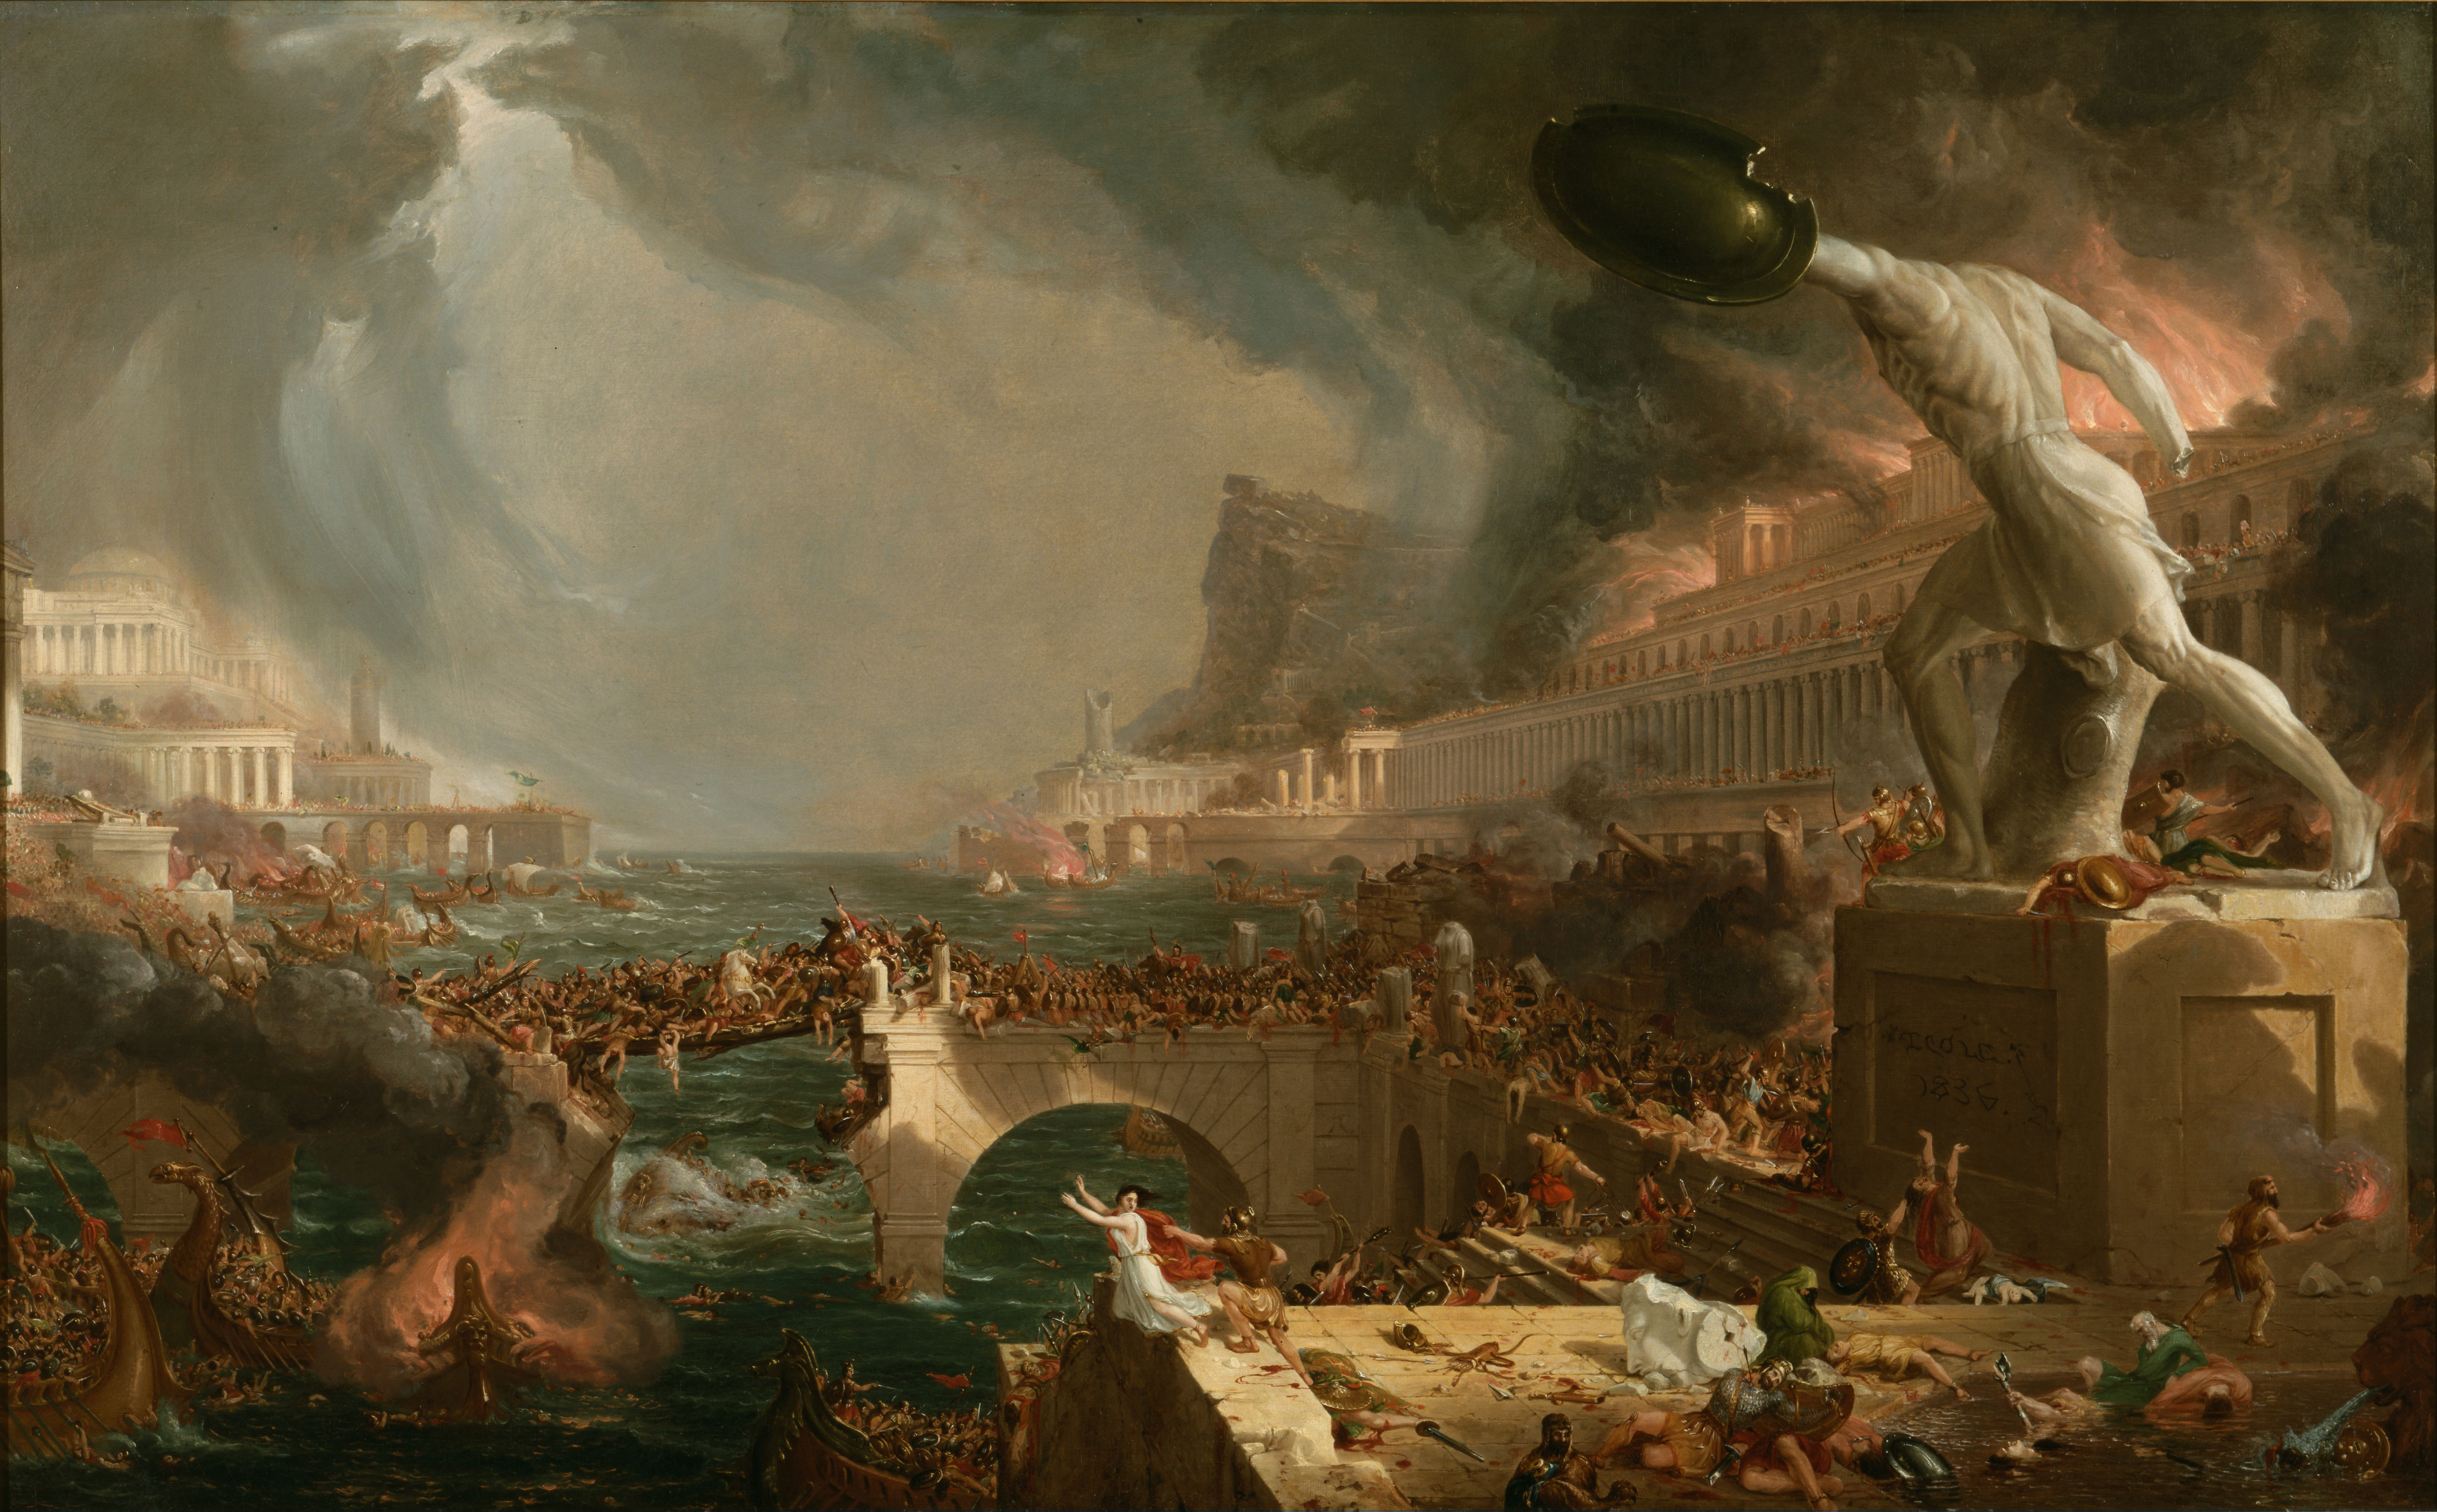 6 ways climate change and disease helped topple the Roman Empire